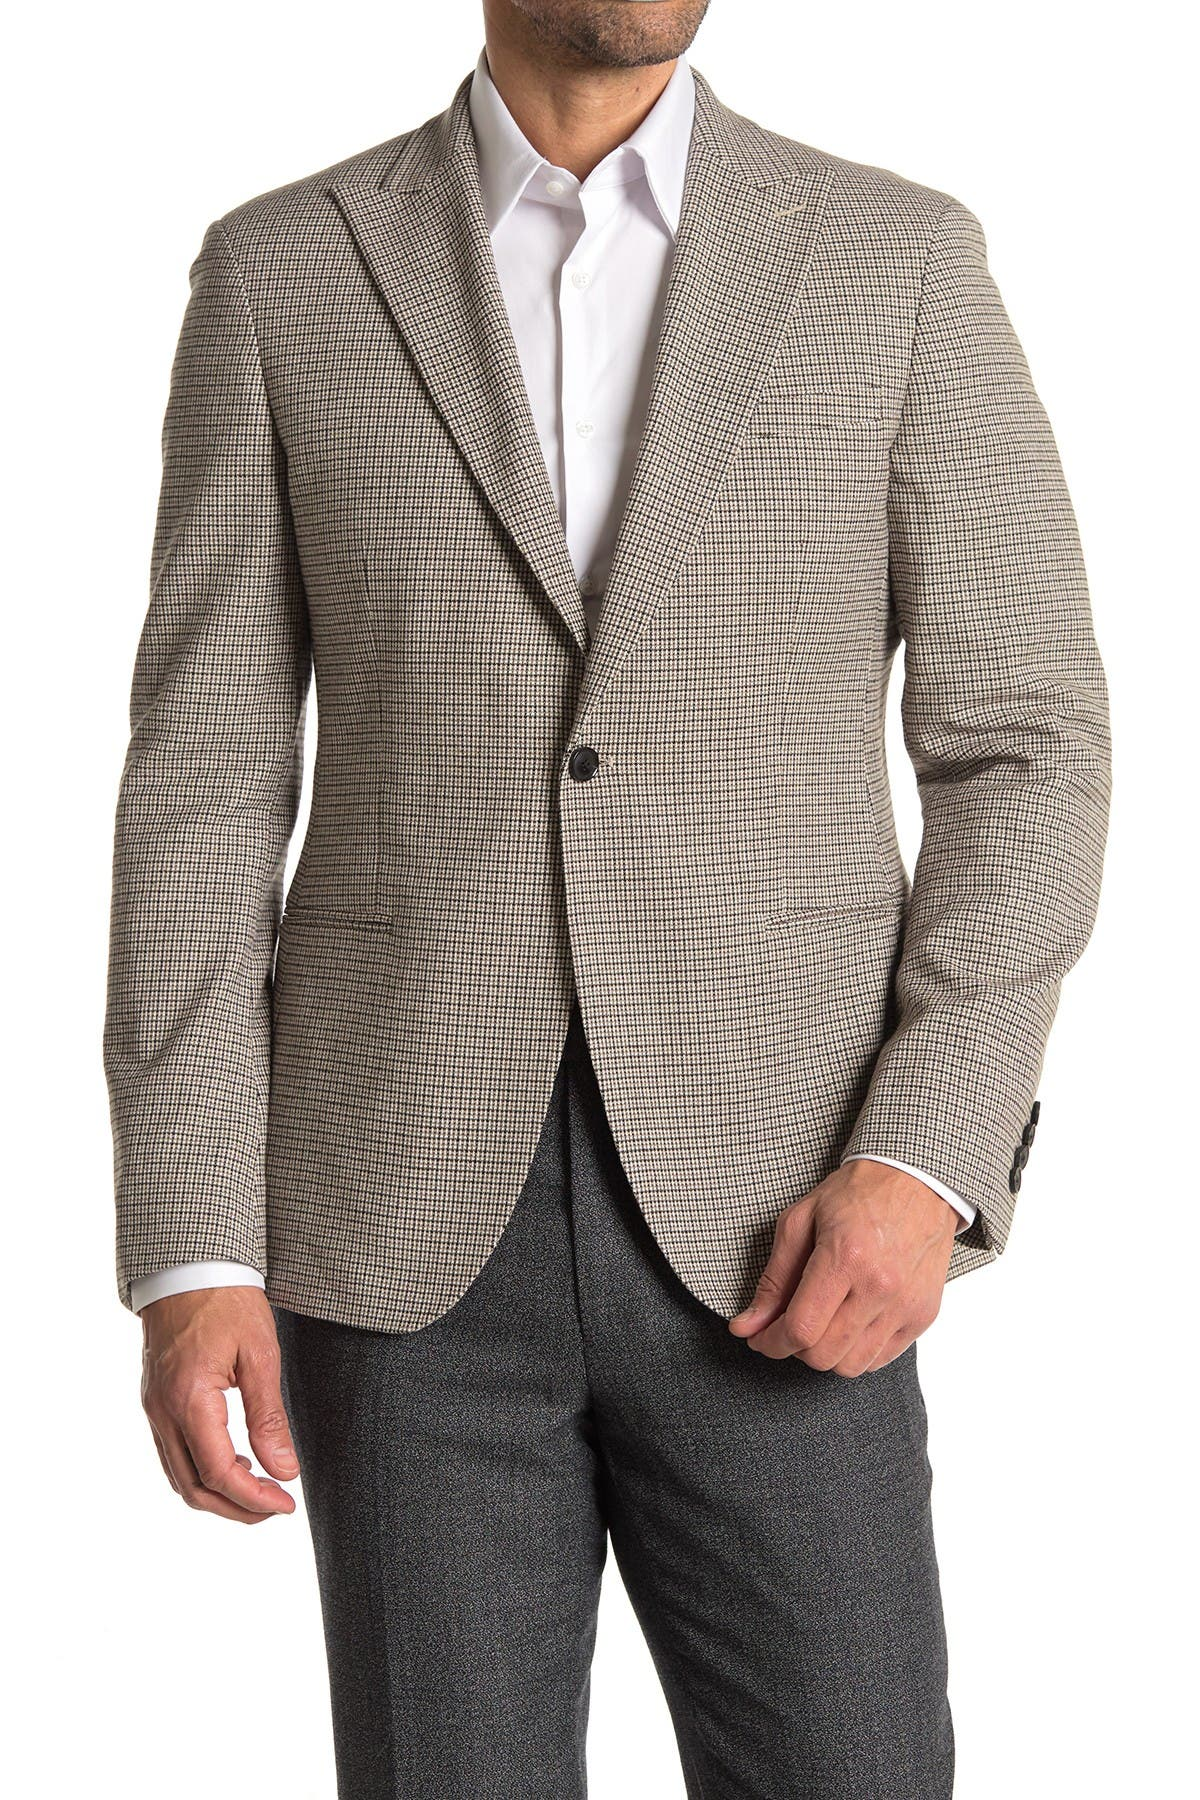 Image of REISS Butler Brown Micro Tatters Two Button Peak Lapel Suit Separates Blazer